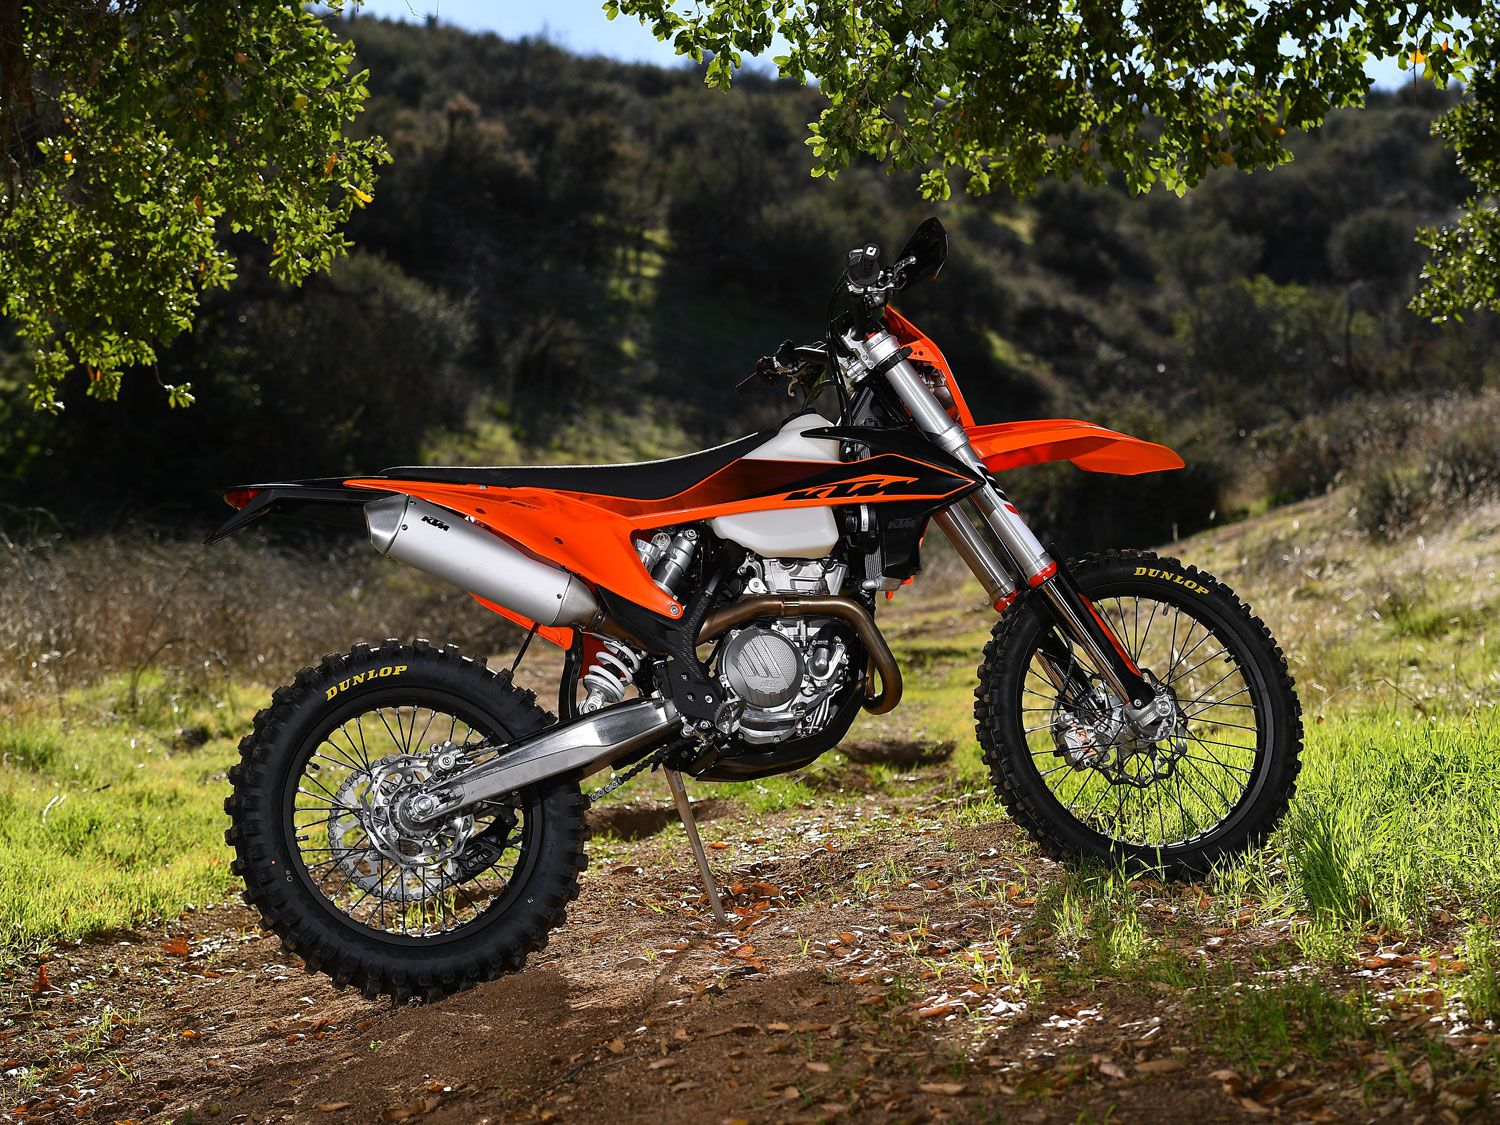 The KTM 350 XCF-W was dropped from the Austrian manufacturer's lineup in 2017. For 2020, the 350cc four-stroke enduro bike has returned.